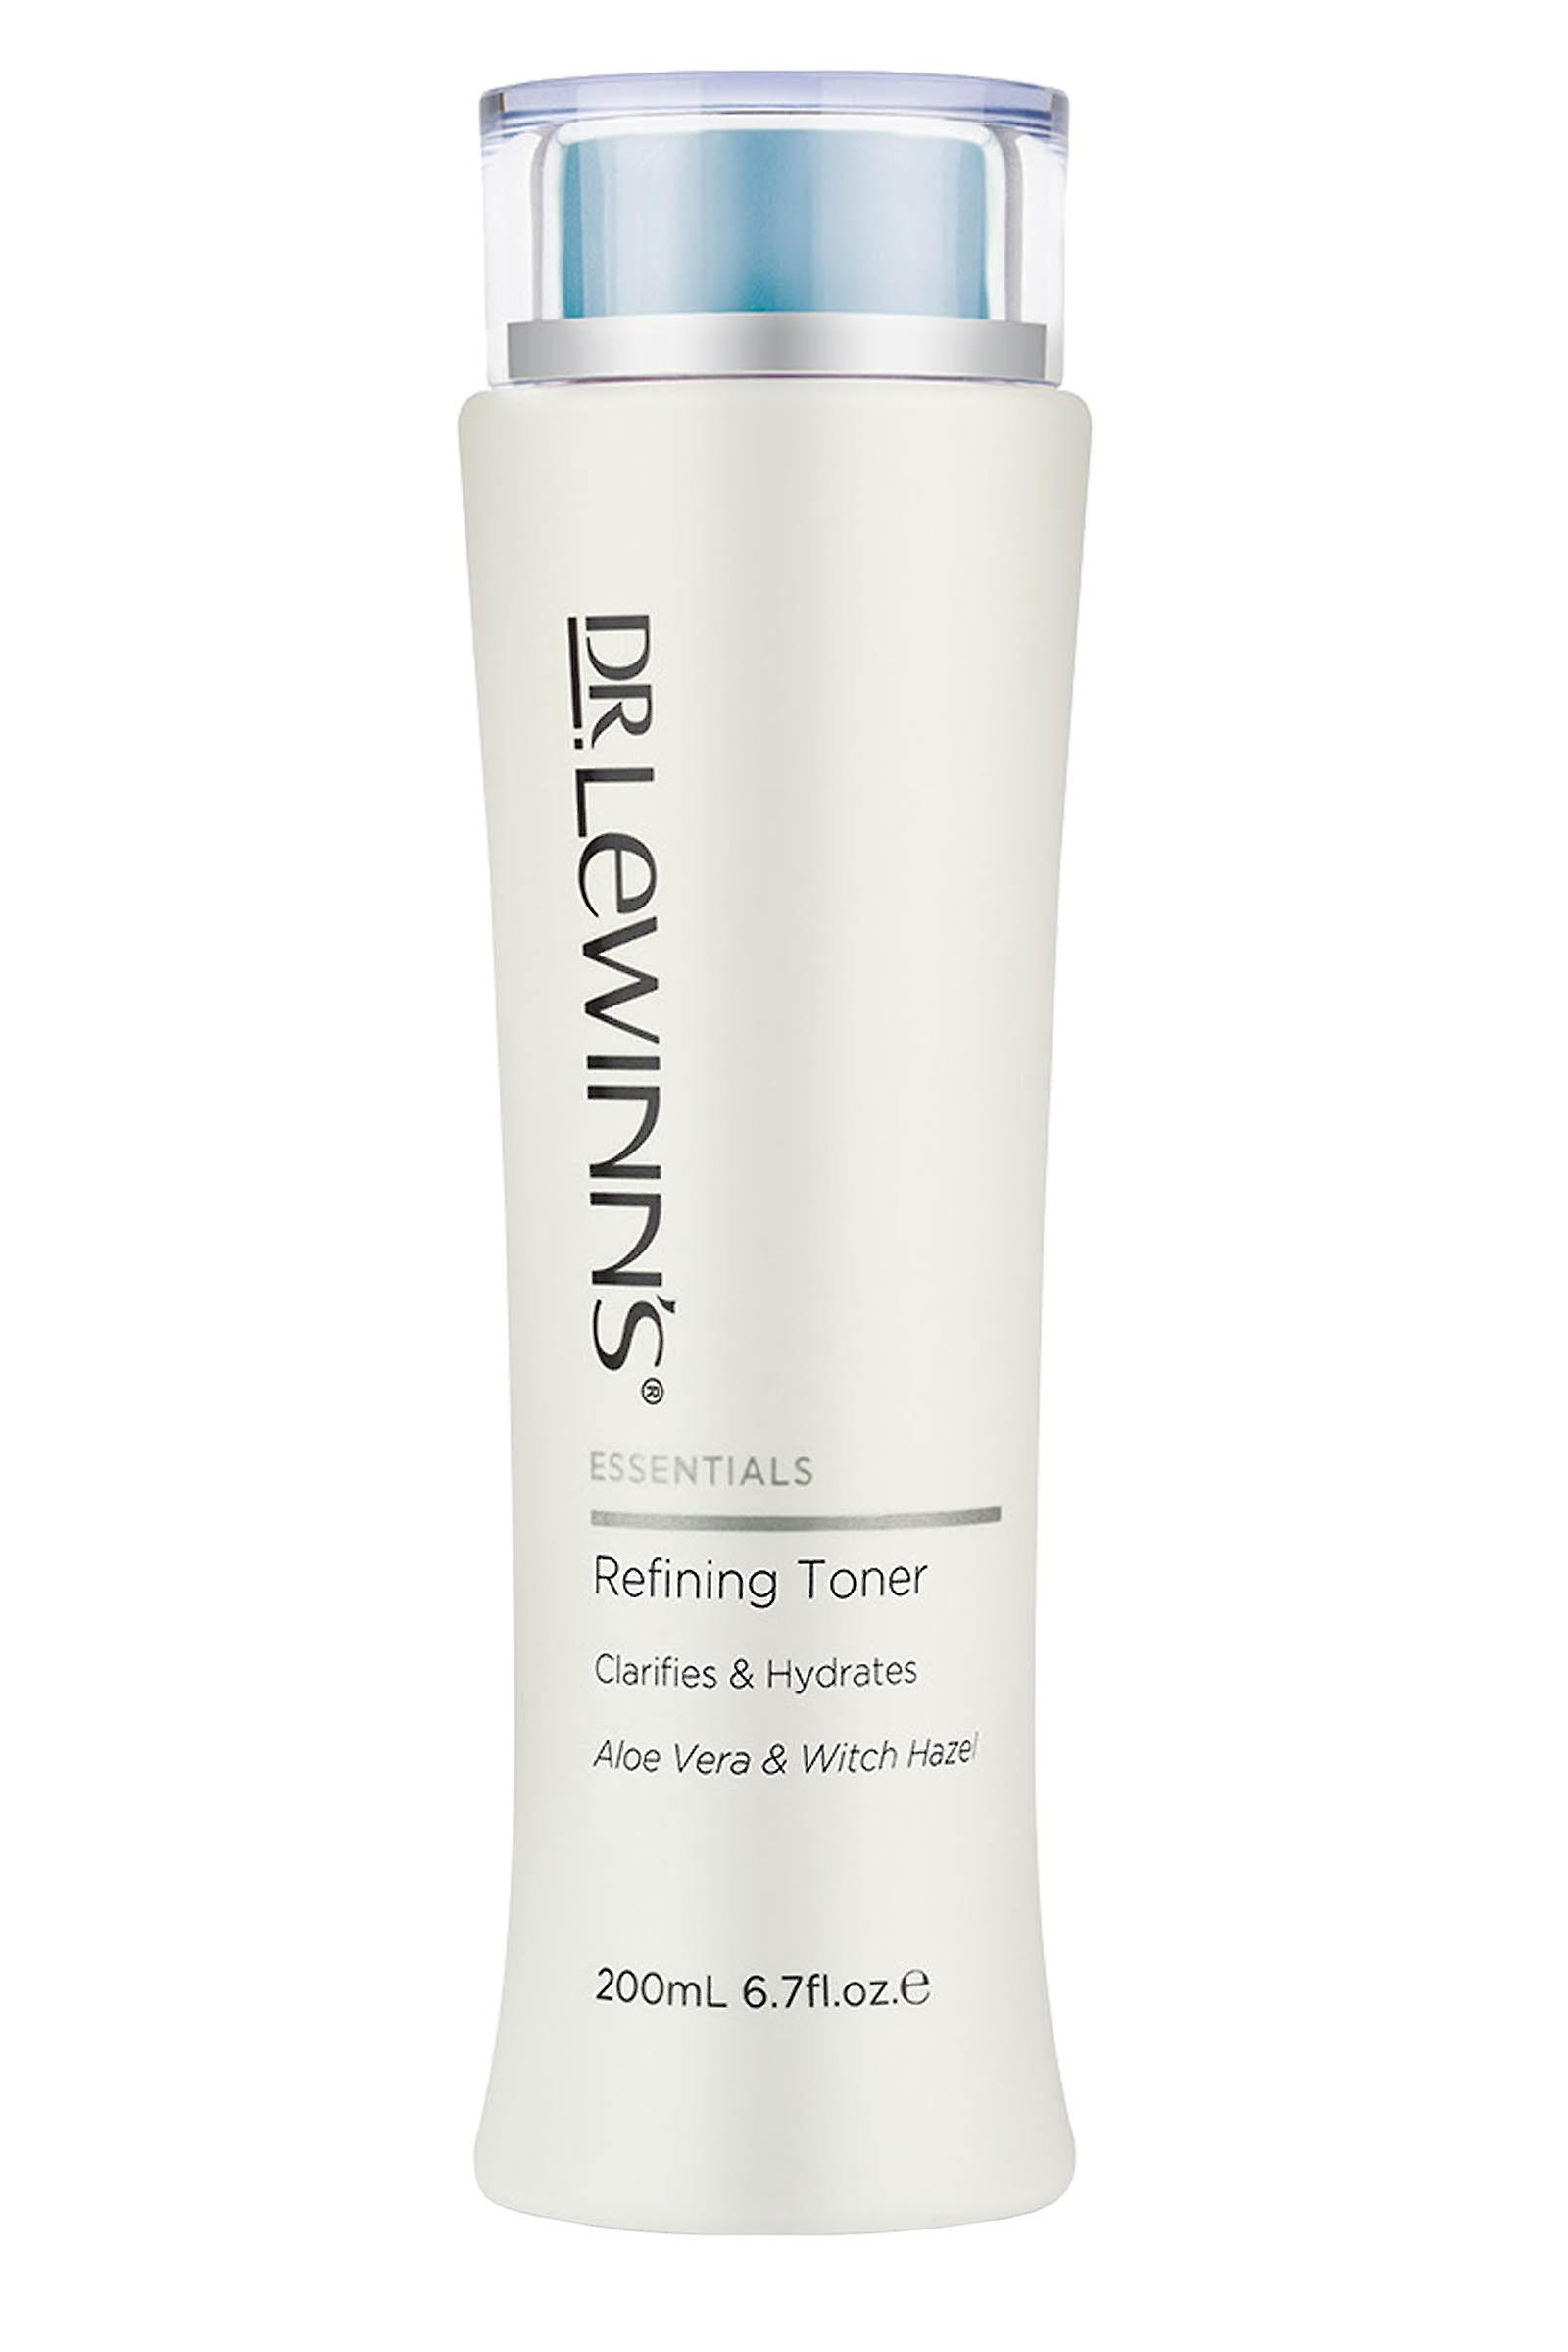 Dr Lewinns Refining Toner 200ml Clarifies and Hydrates